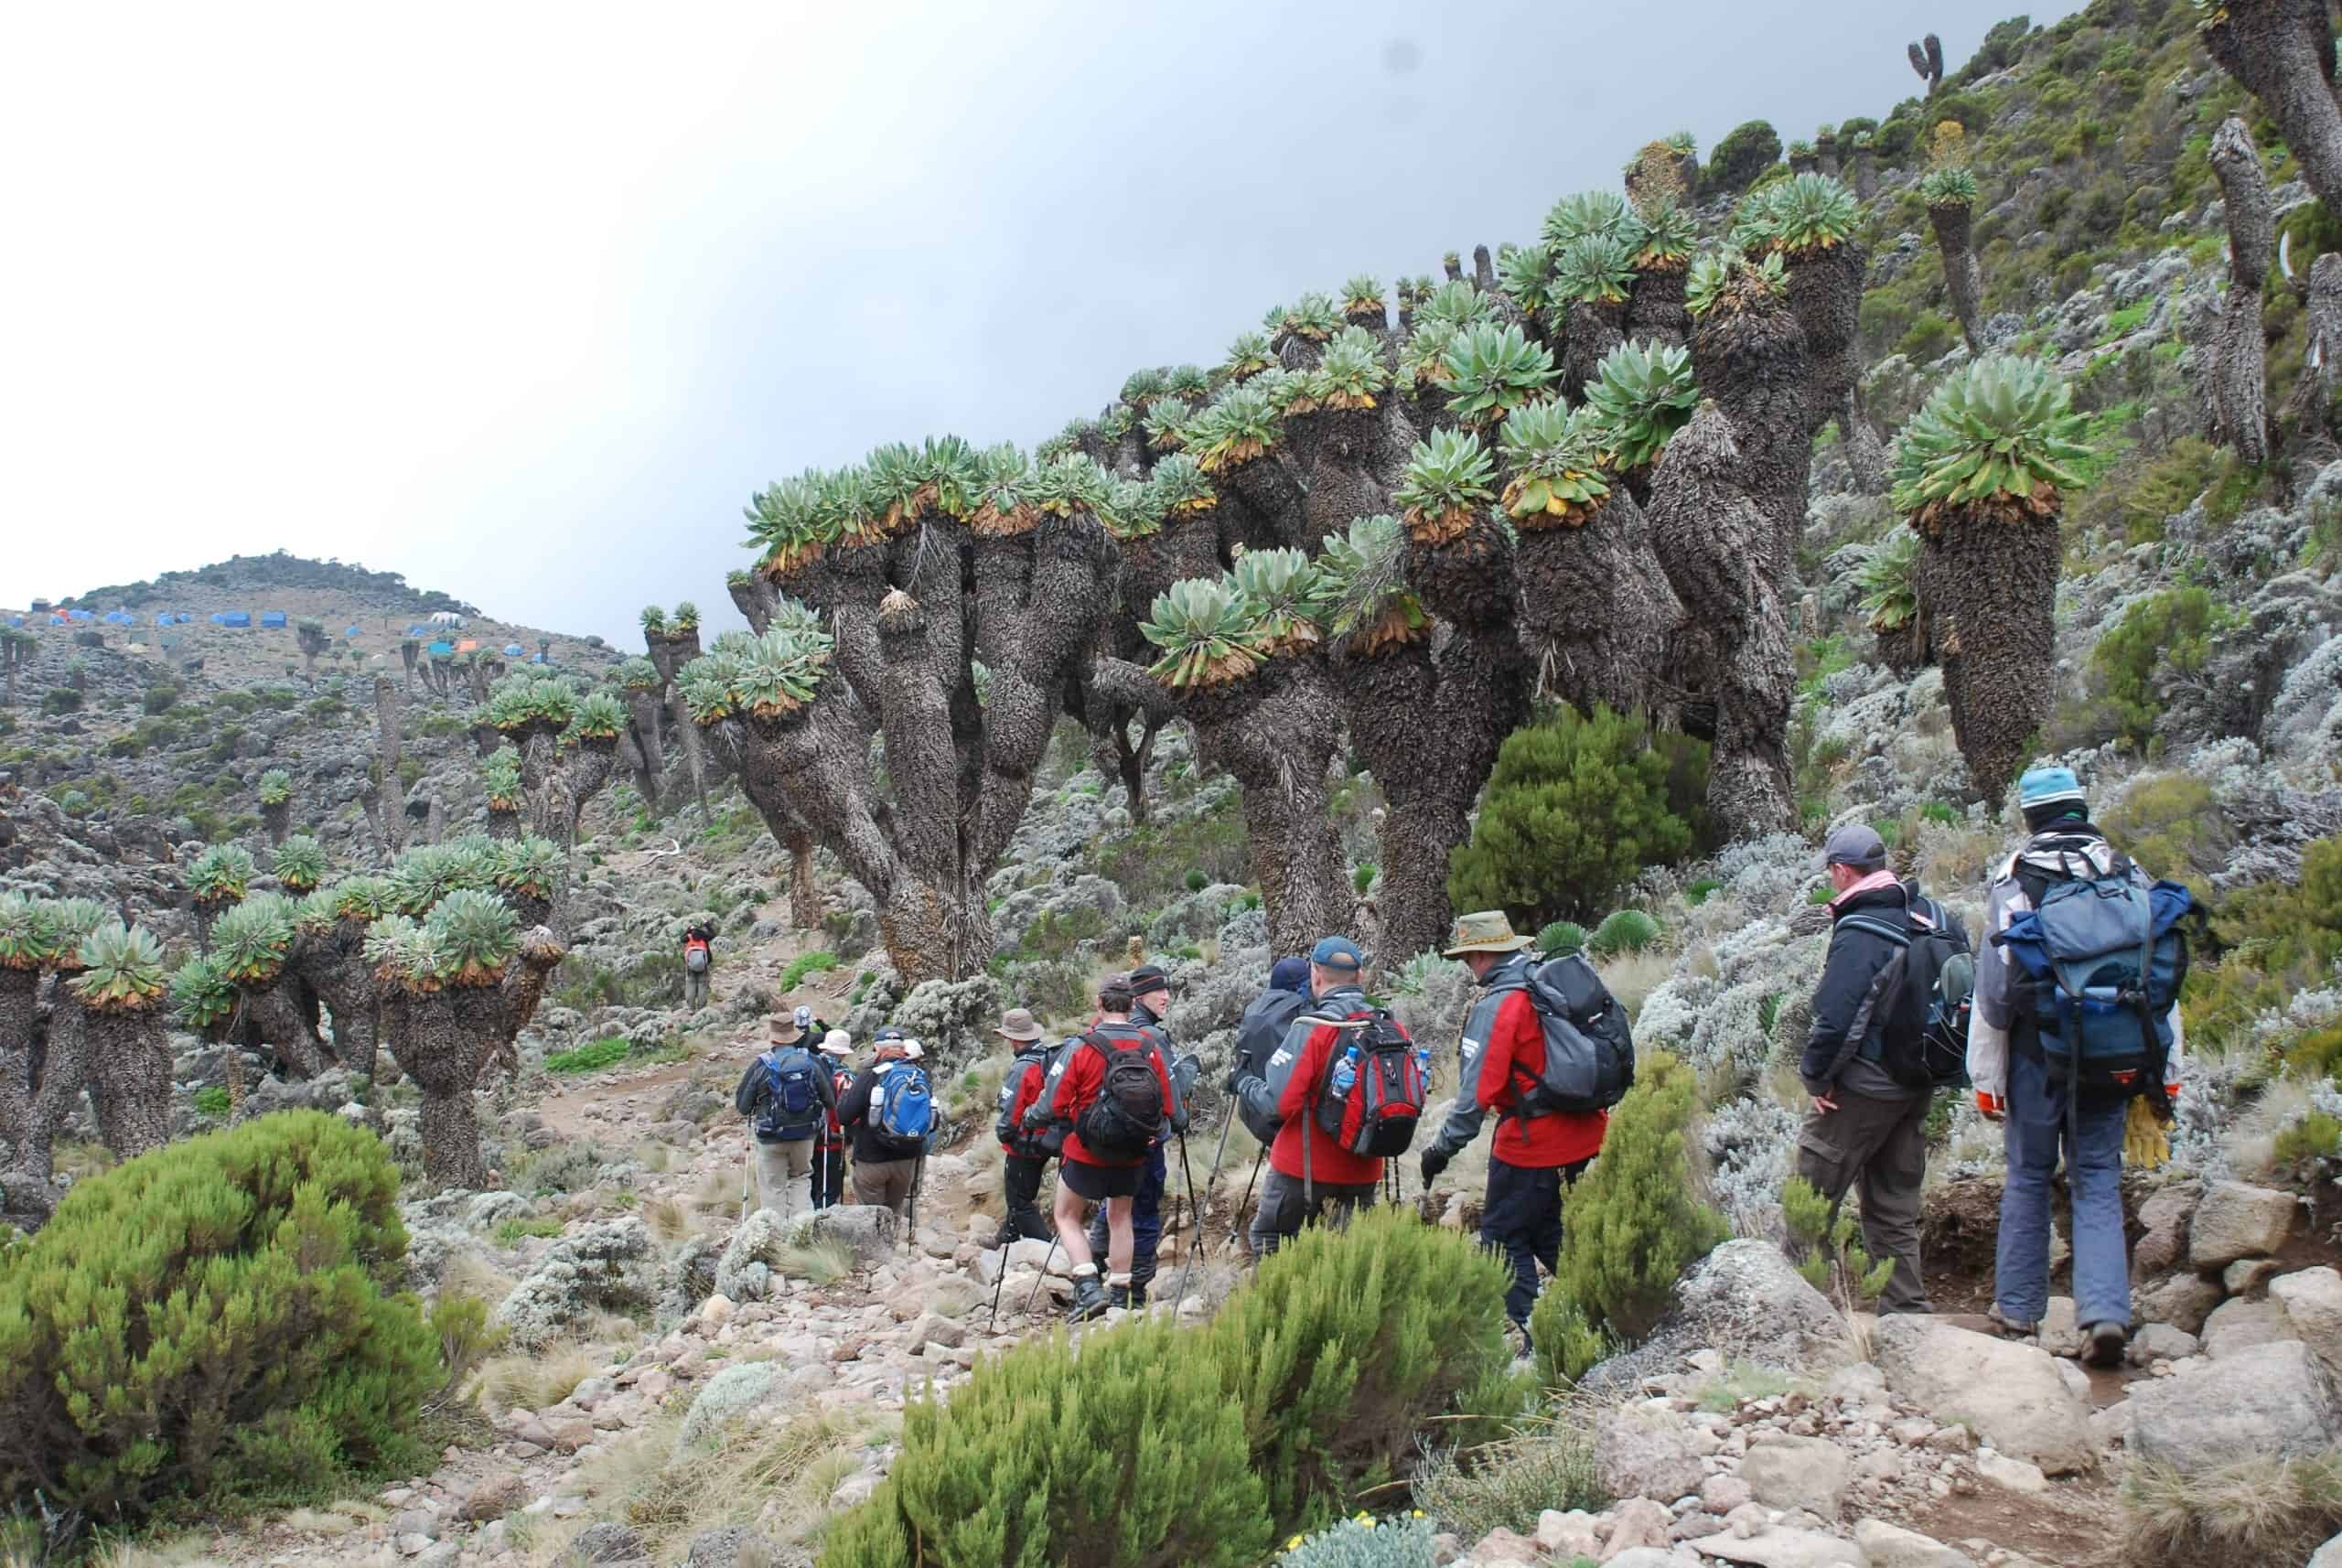 Line of trekkers march through a grove of giant senecios/groundsels, with Barranco Campsite in the background